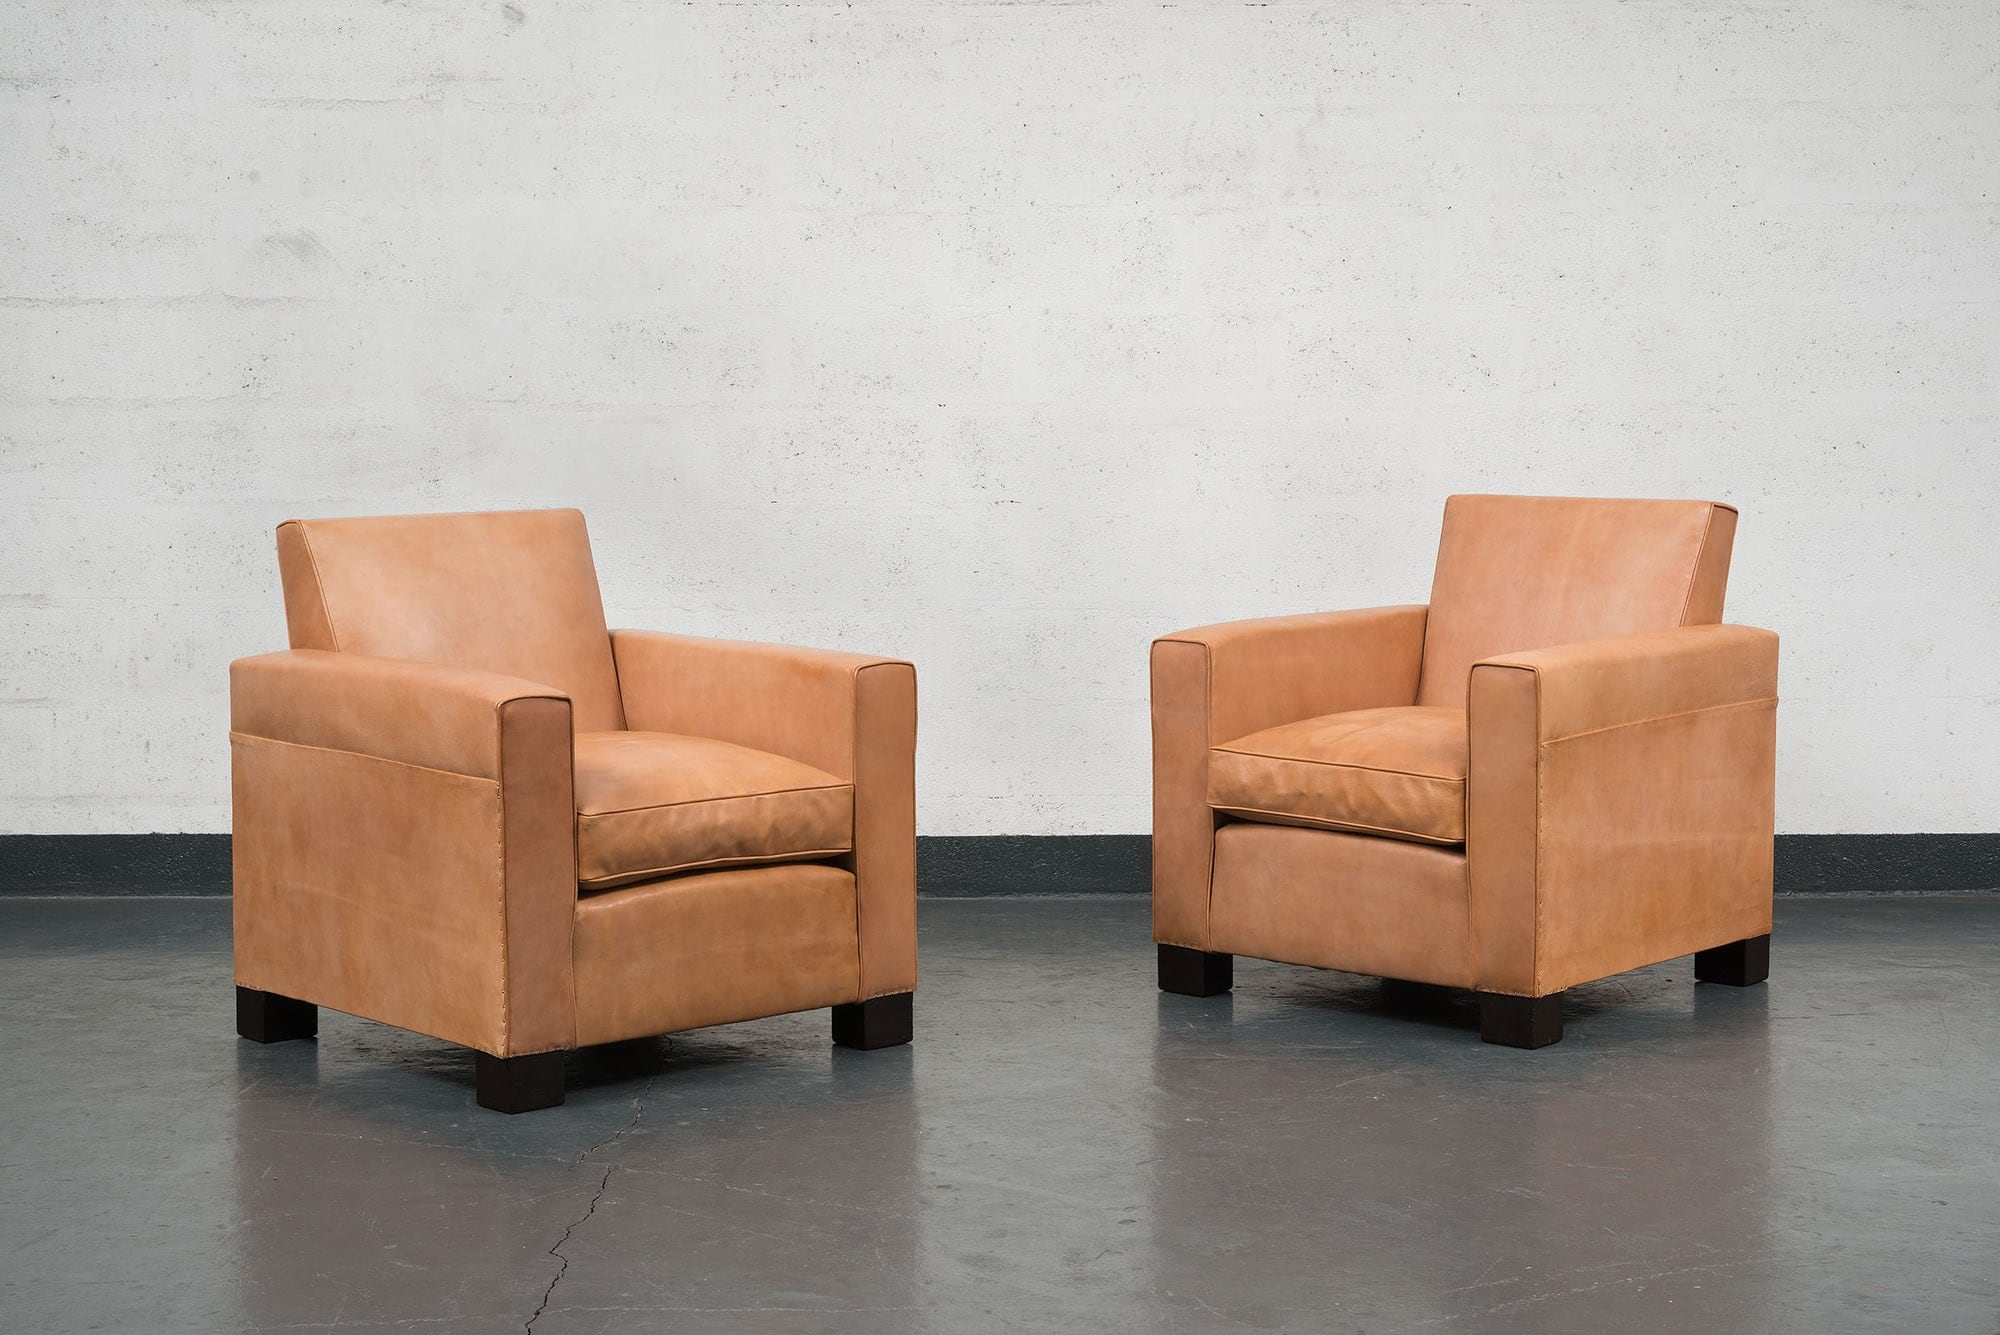 Jean-Charles Moreux, Rare pair of leather armchairs, vue 01